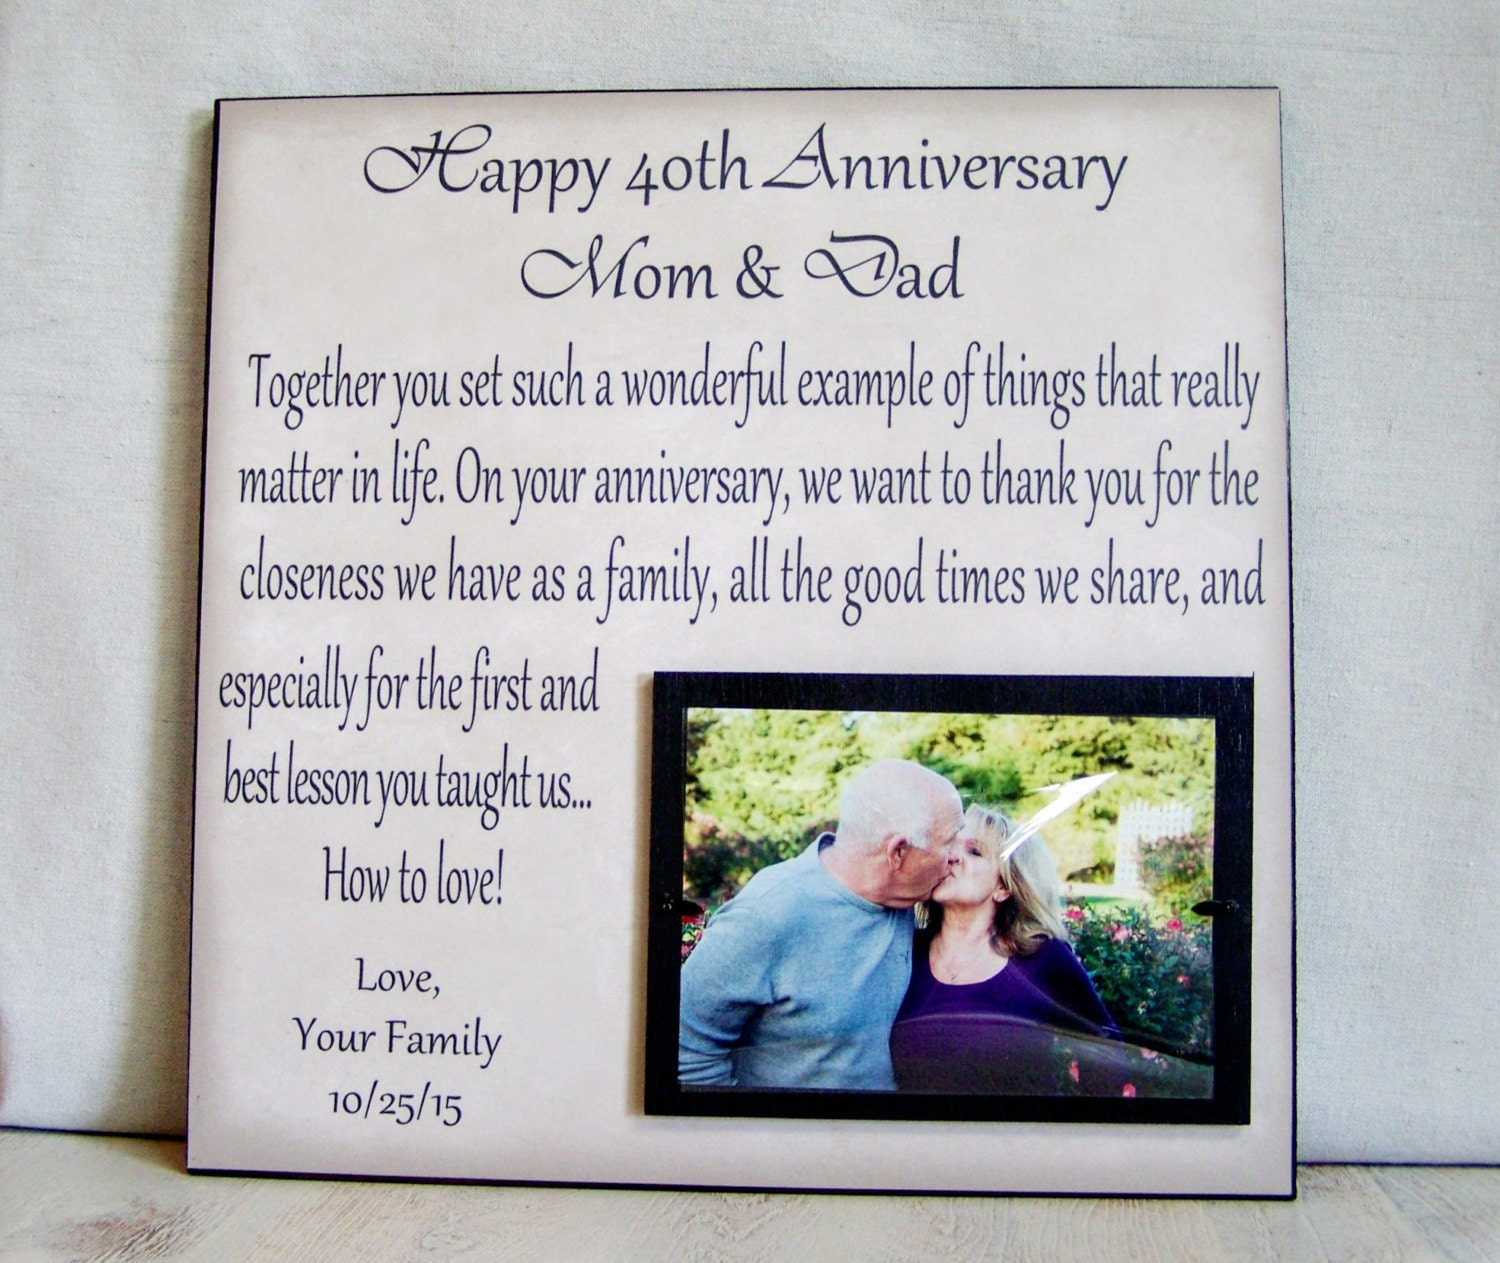 40th Wedding Anniversary Gifts For Mum And Dad : Ideas 30th Wedding Anniversary Gift For Parents anniversary picture ...